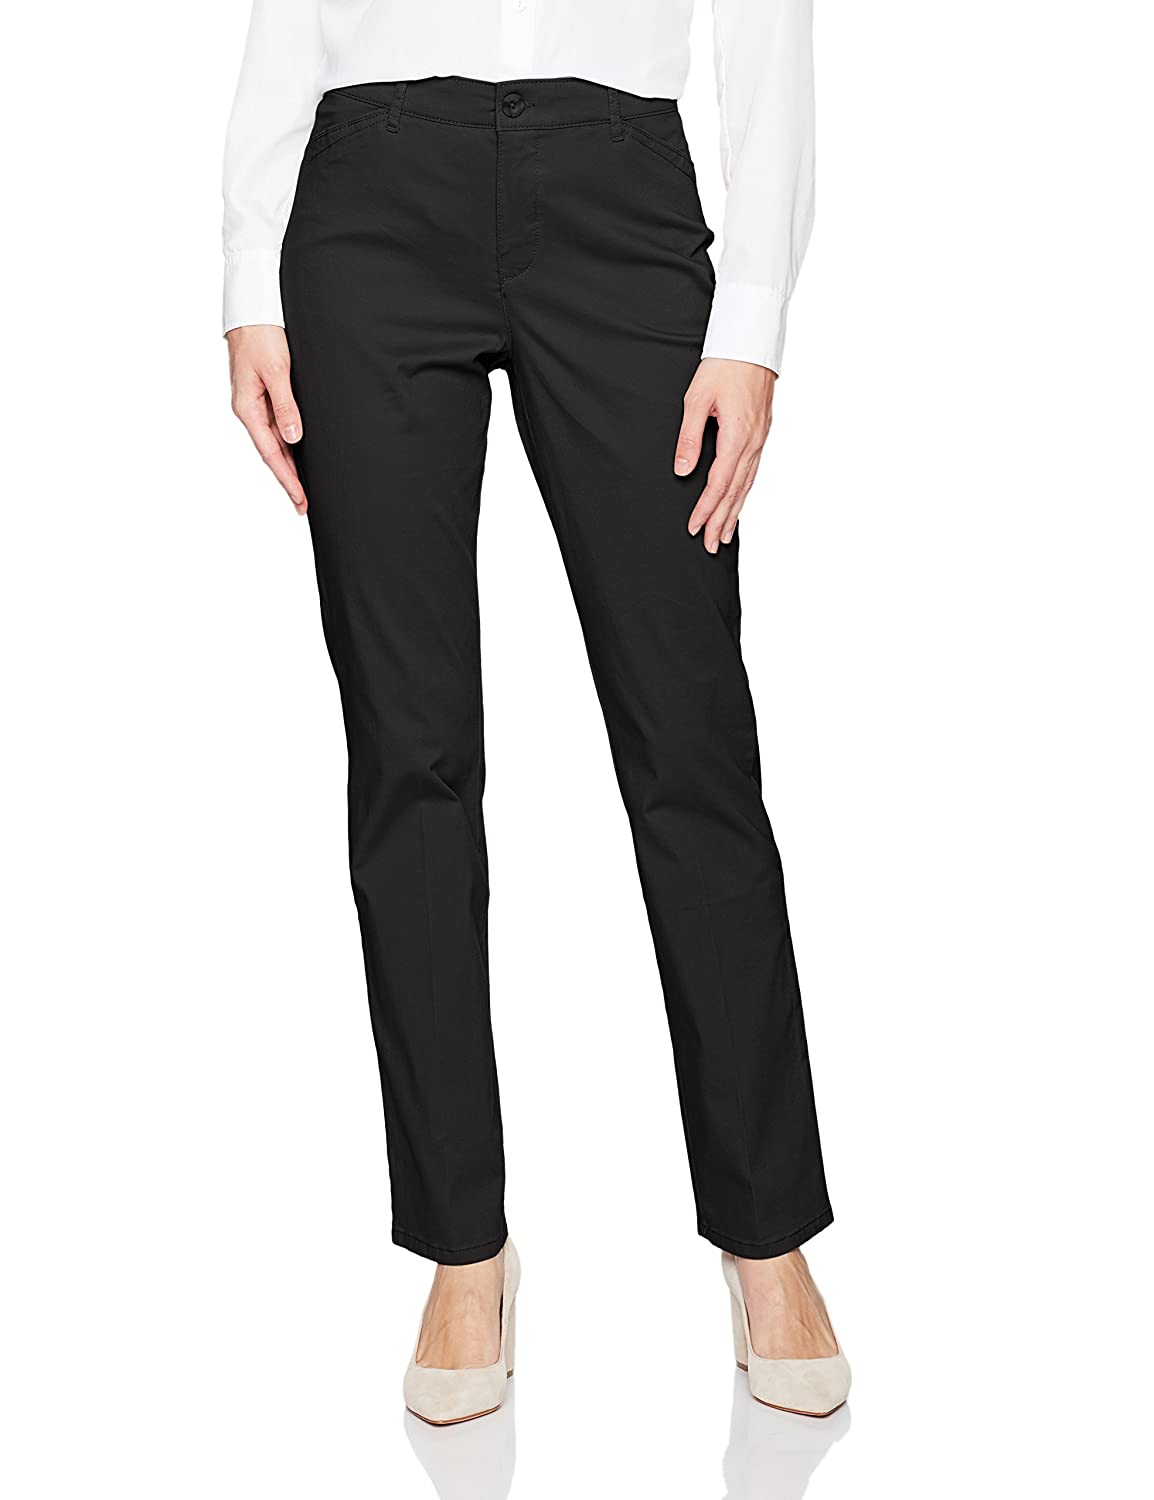 5561e143f6152 GLORIA VANDERBILT Women s Anita Straight Leg Pant at Amazon Women s Clothing  store